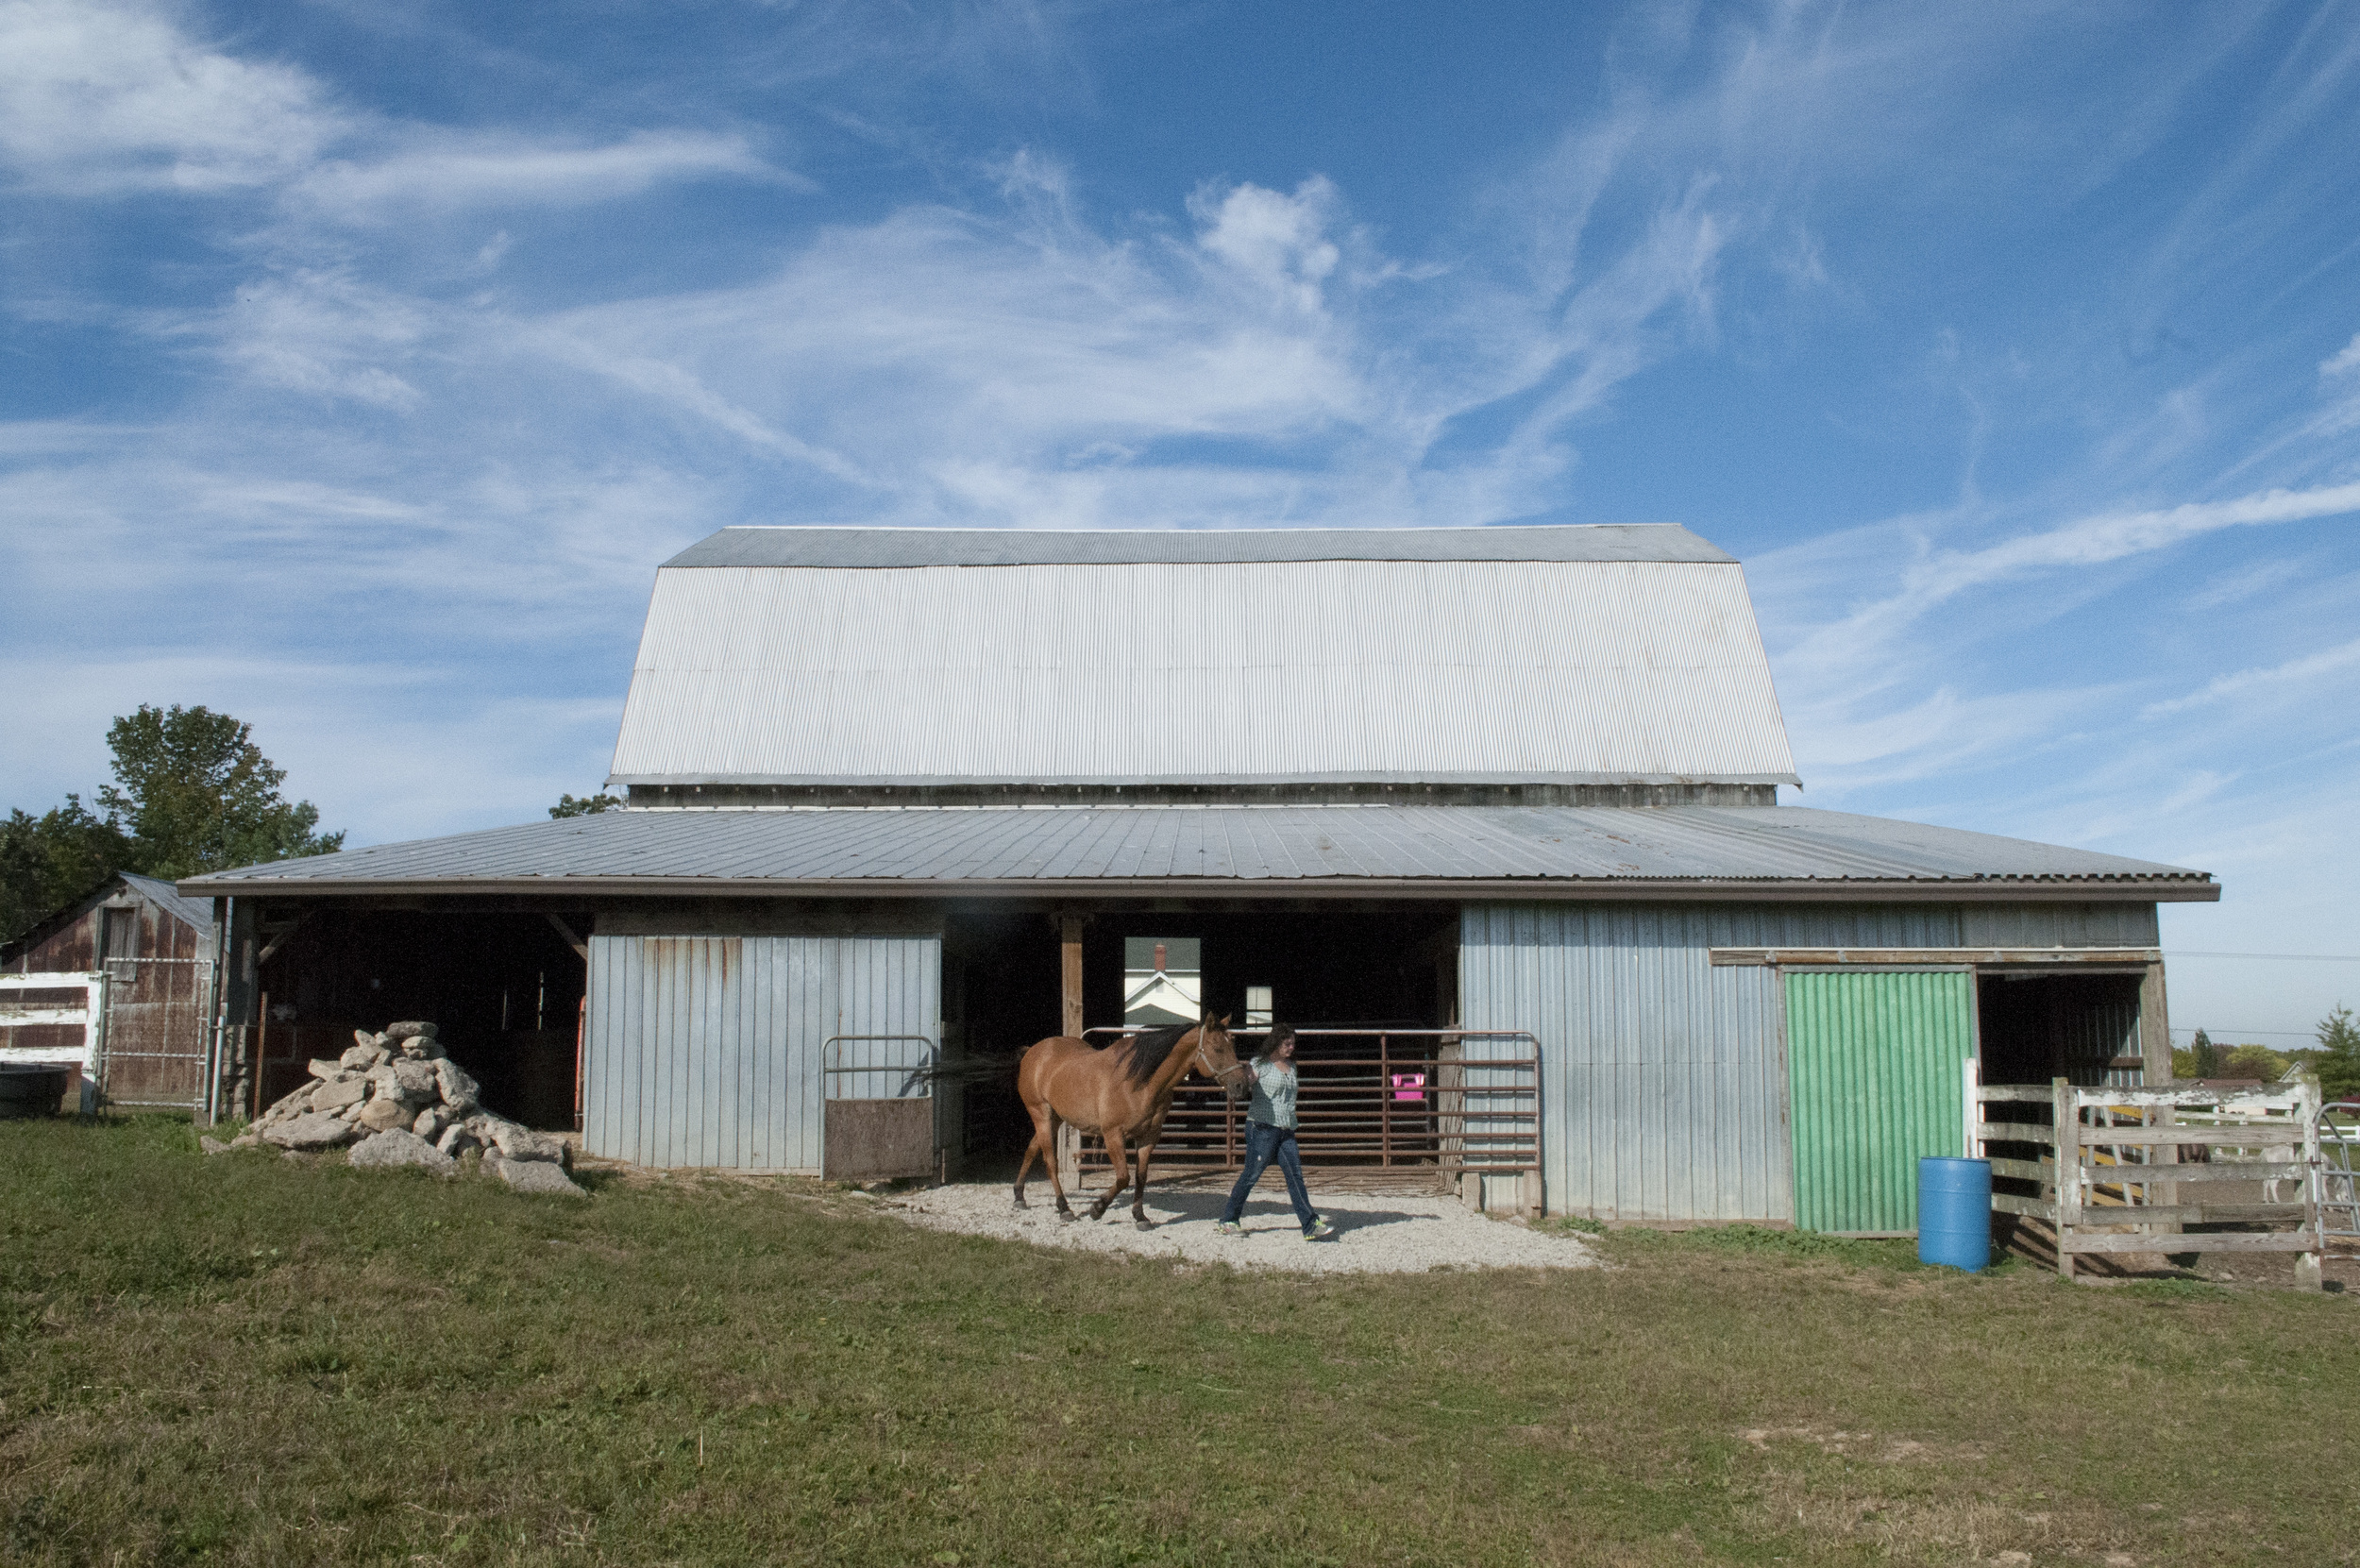 Tammy Tiedtke walks Switch out of her barn to stretch his legs after being assessed by the chiropractor. When the horses are not in their stables, they often roam around the four-acre area fenced off for them on the grounds (Sept. 27, 2014).